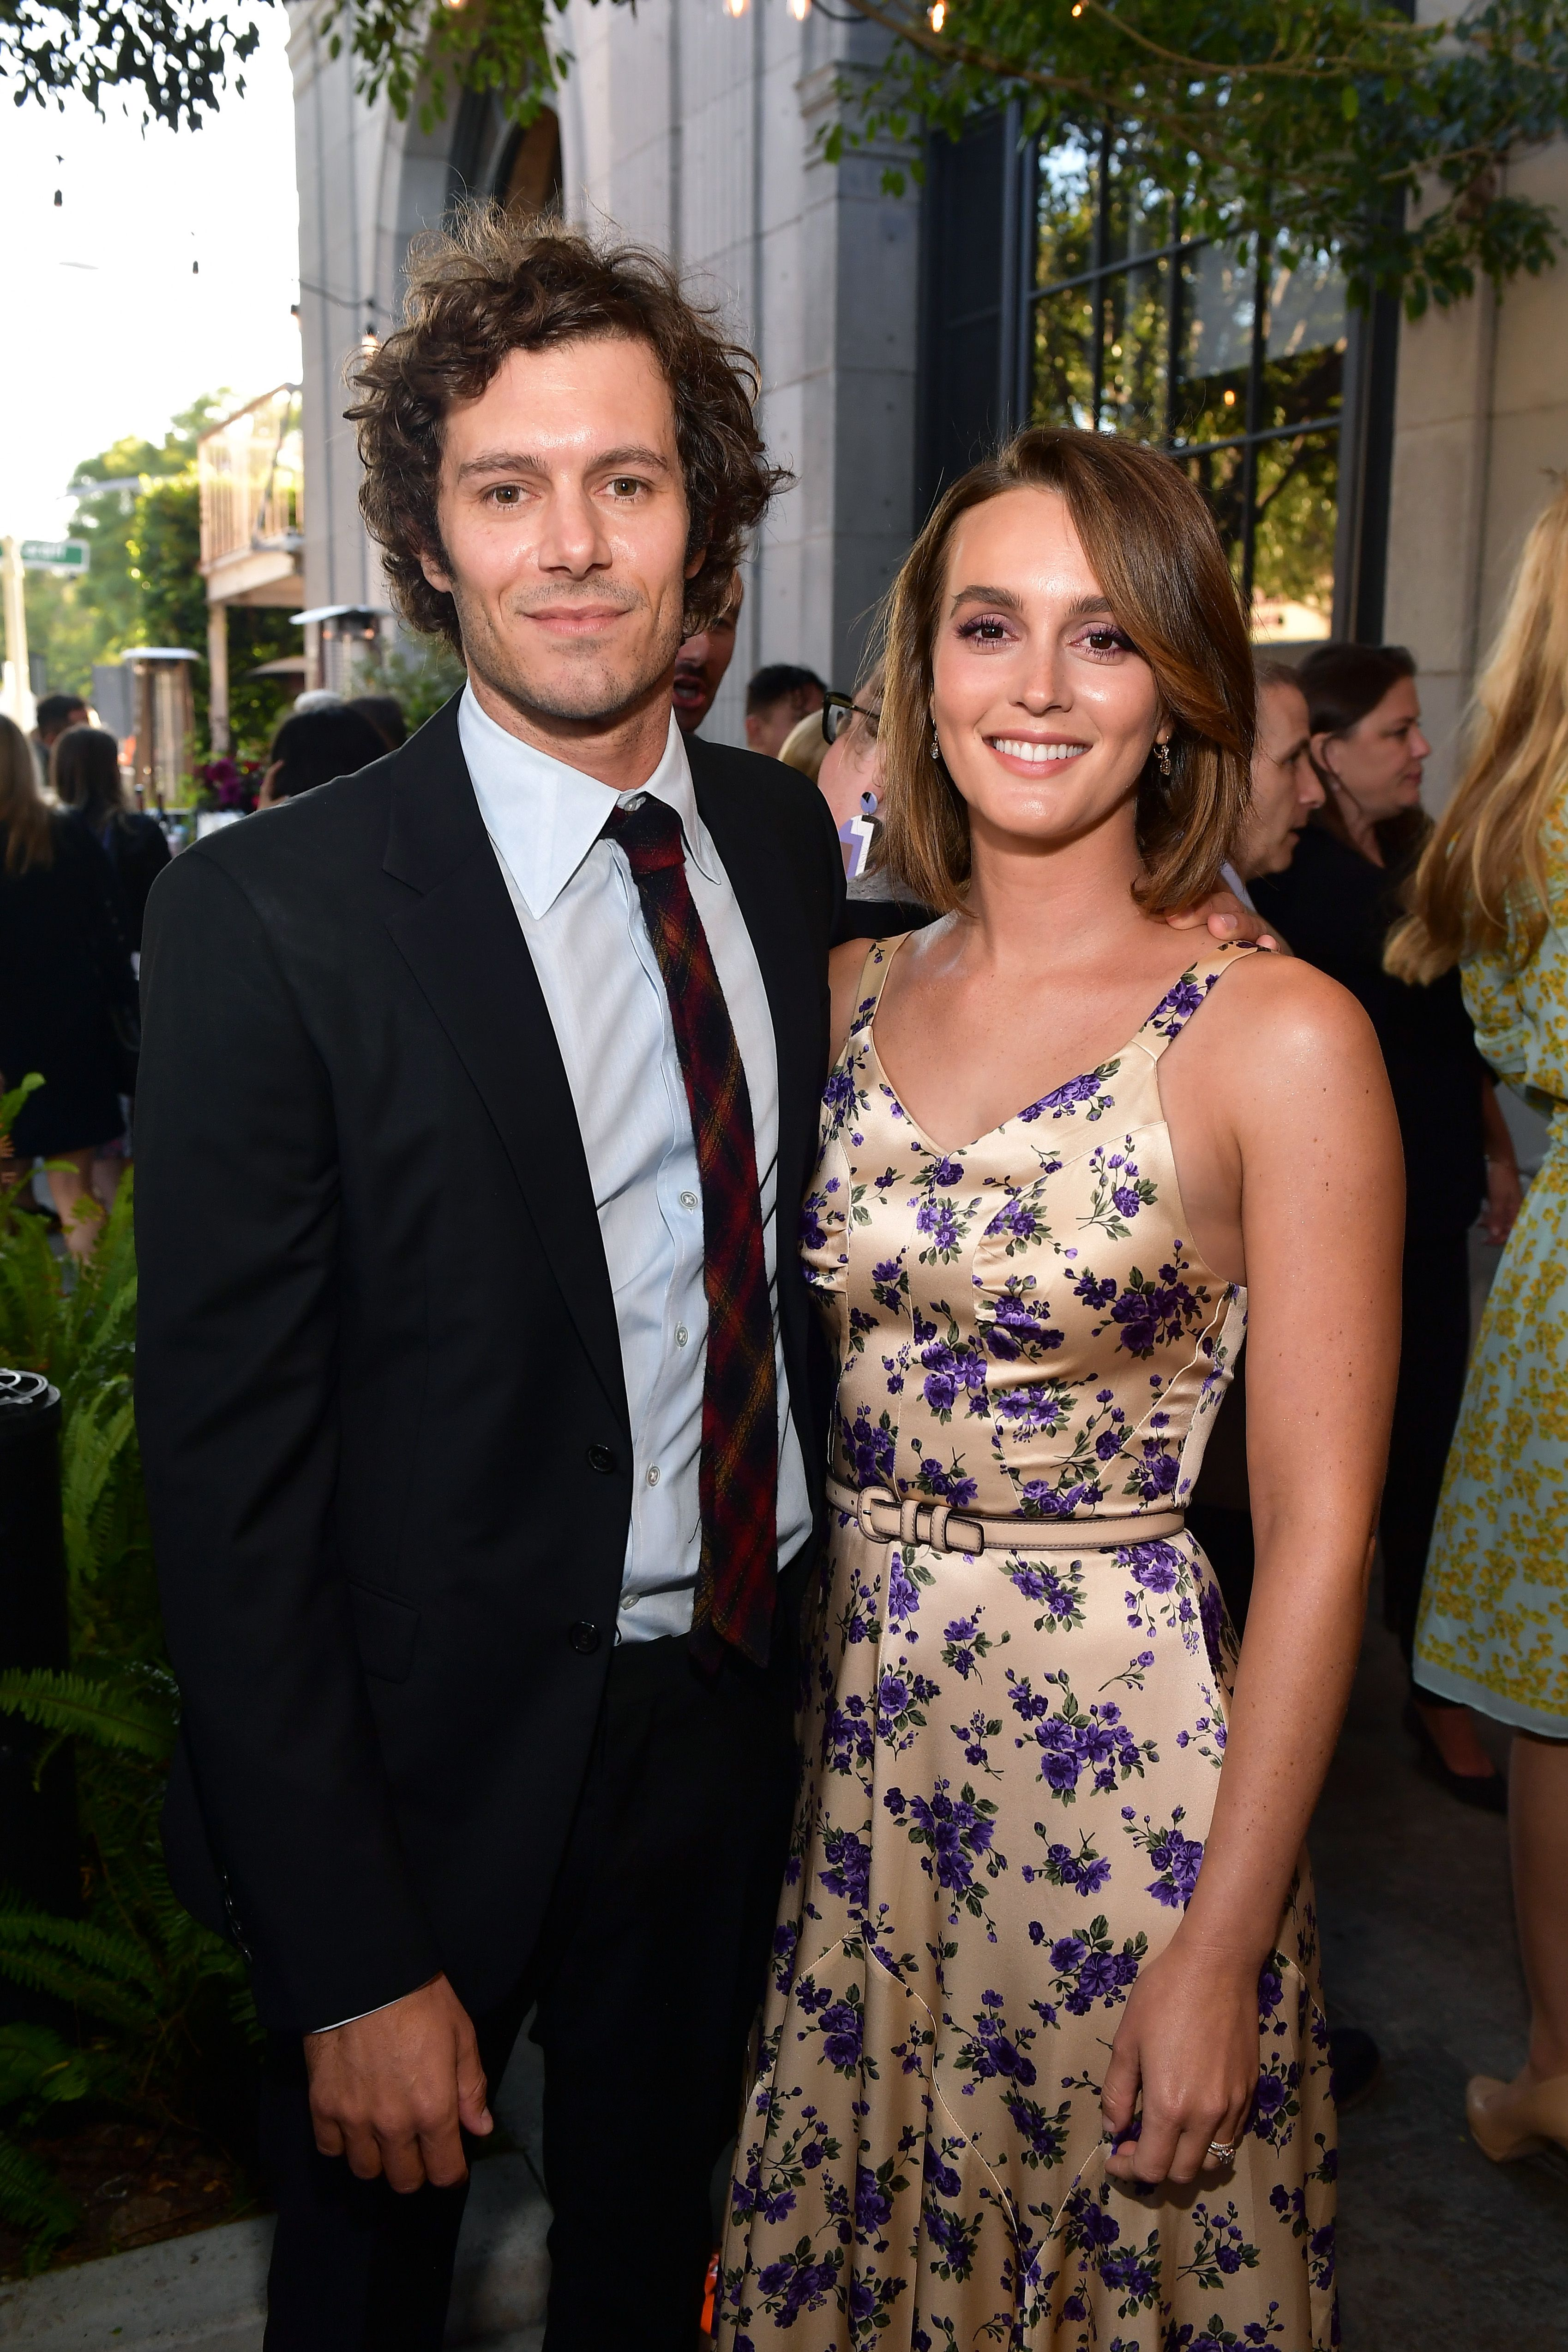 Leighton Meester And Adam Brody Make Rare Red Carpet Appearance Together